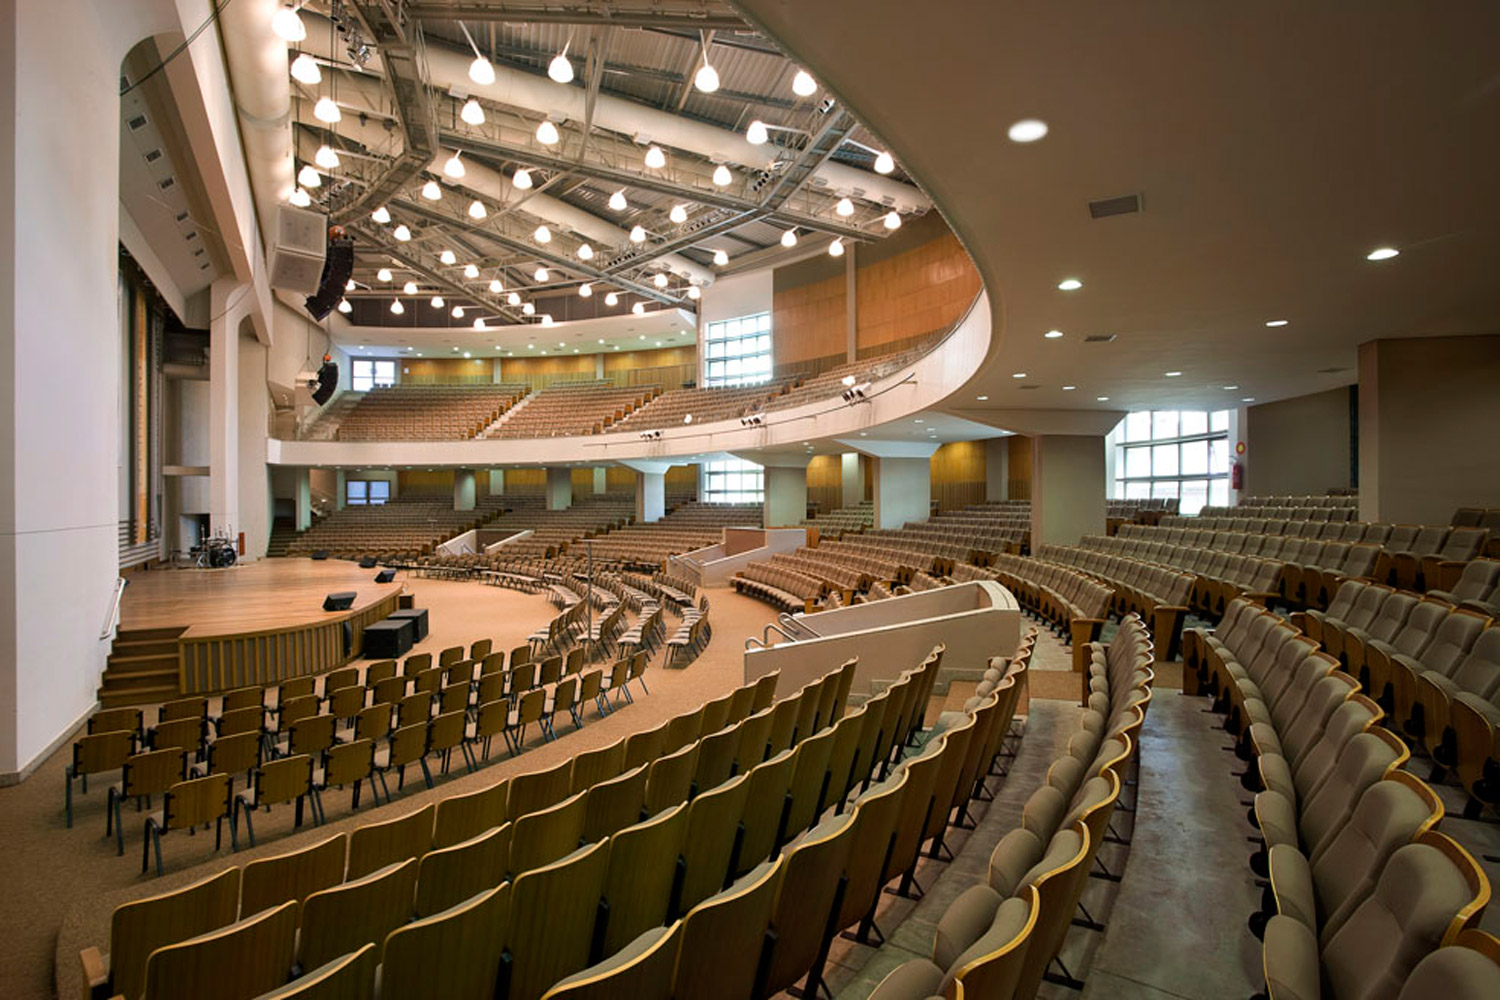 Igreja Batista Central, IBC in Brazil. Acoustic solutions by WSDG. Perfect acoustics in religious spaces. Stage right photo.